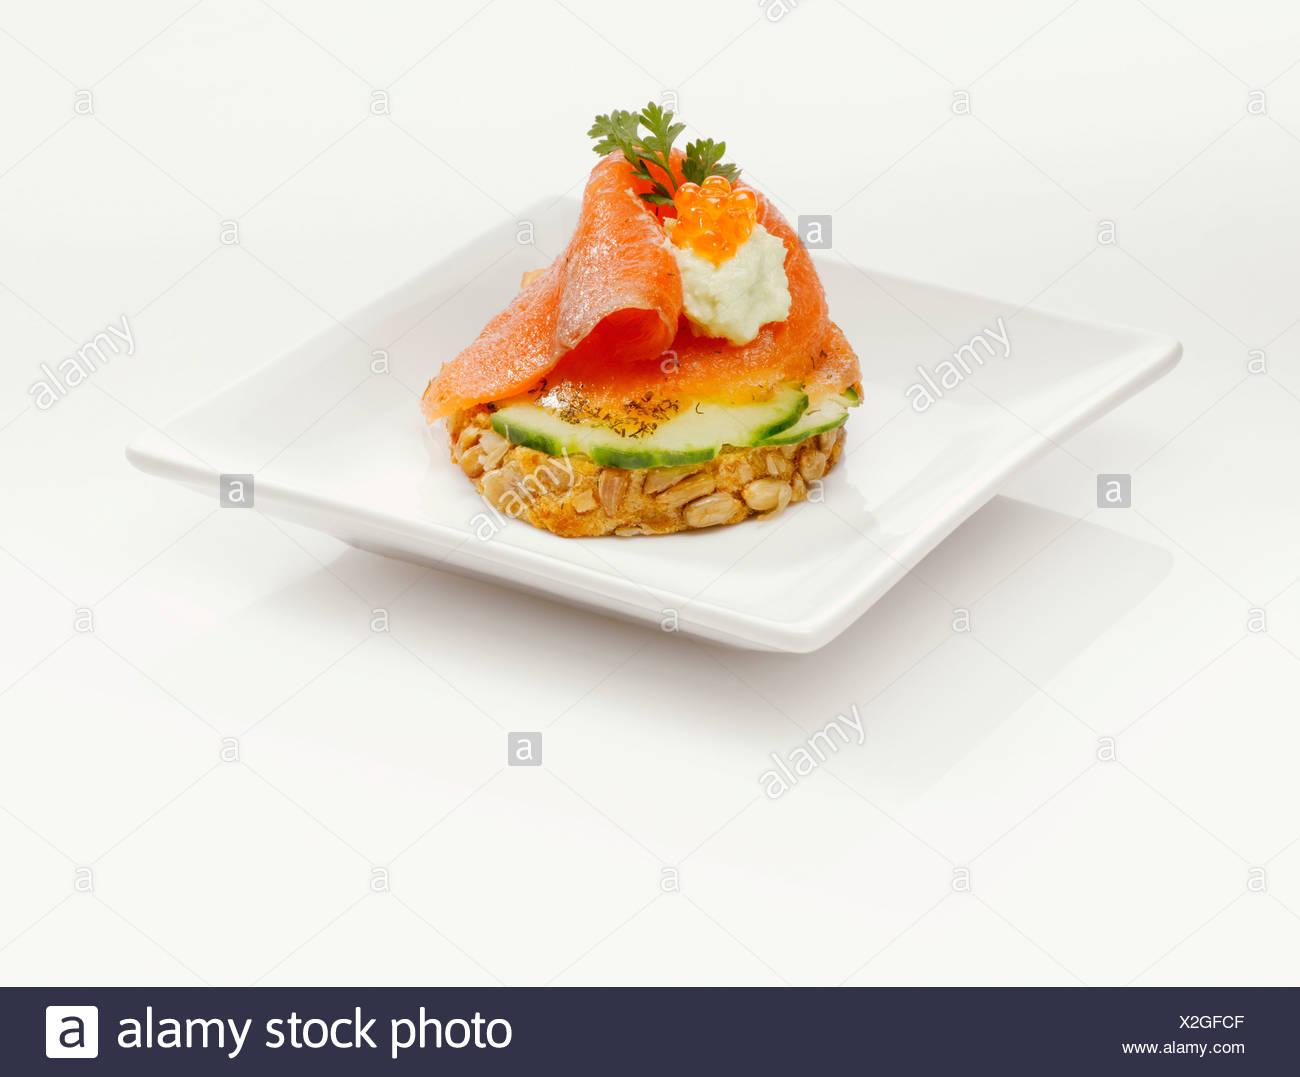 Sandwich with salmon and cucumber slices - Stock Image